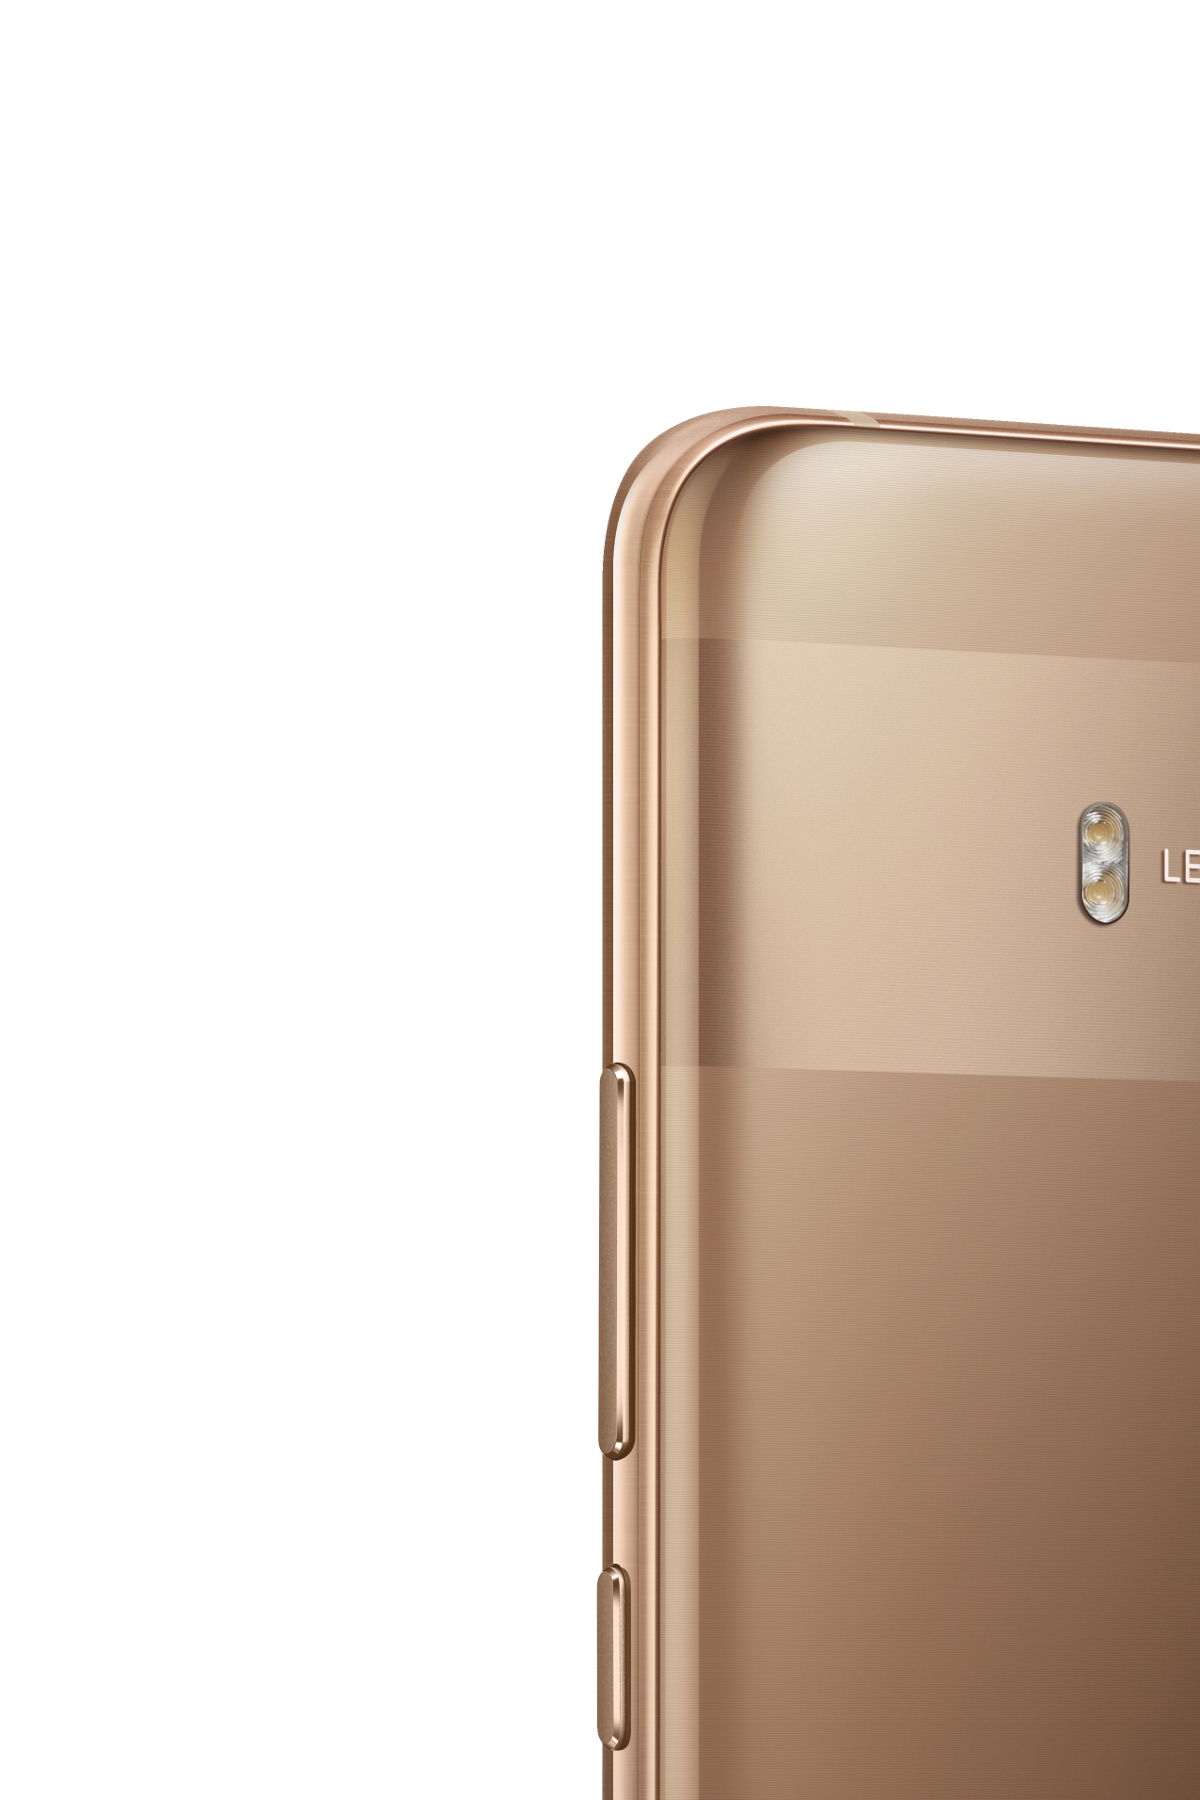 The Huawei Mate 10 is the first smartphone to have an AI - Alvinology